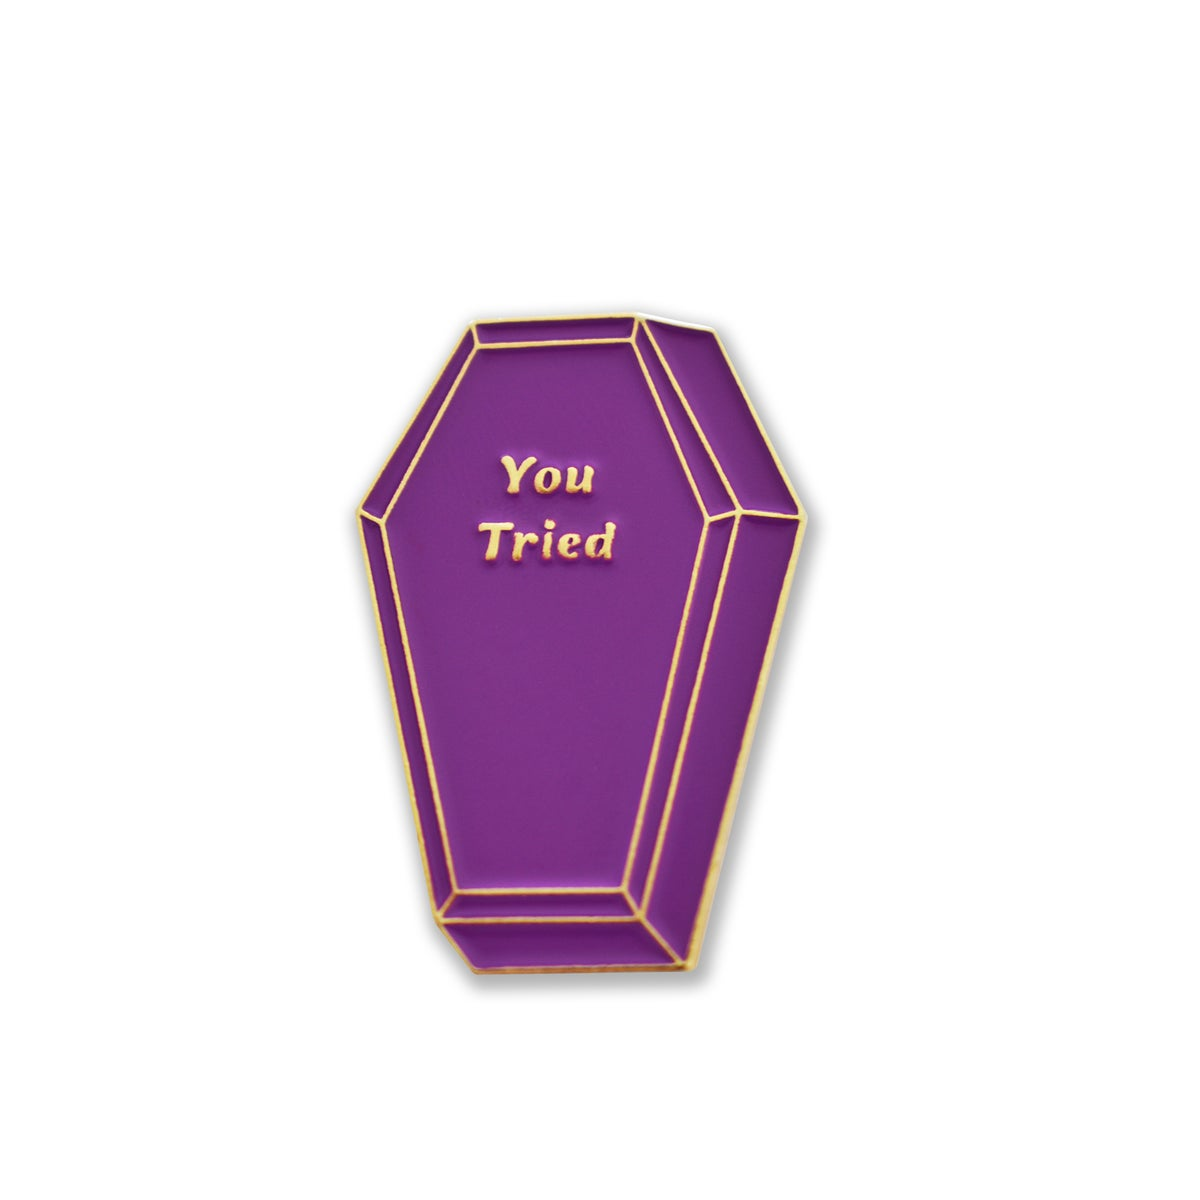 Image of 'You Tried' Coffin Enamel Pin